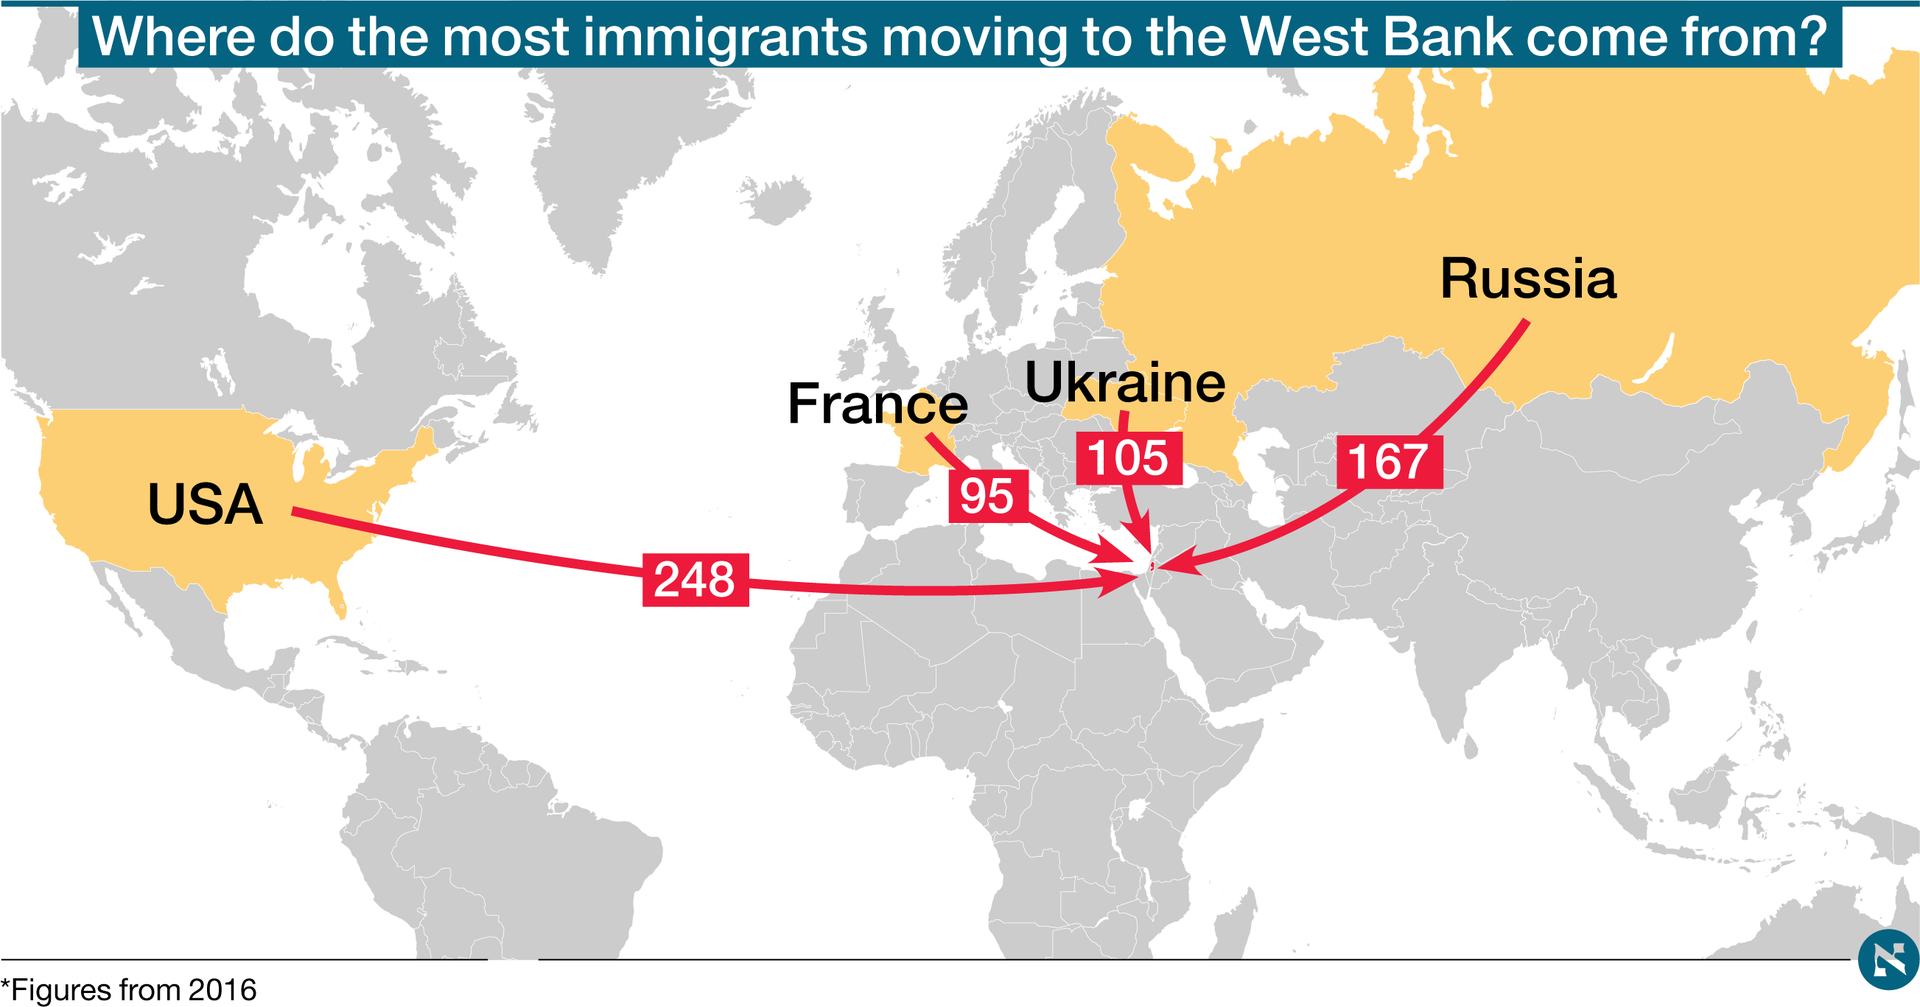 Jewish immigration to the West Bank, 2016.